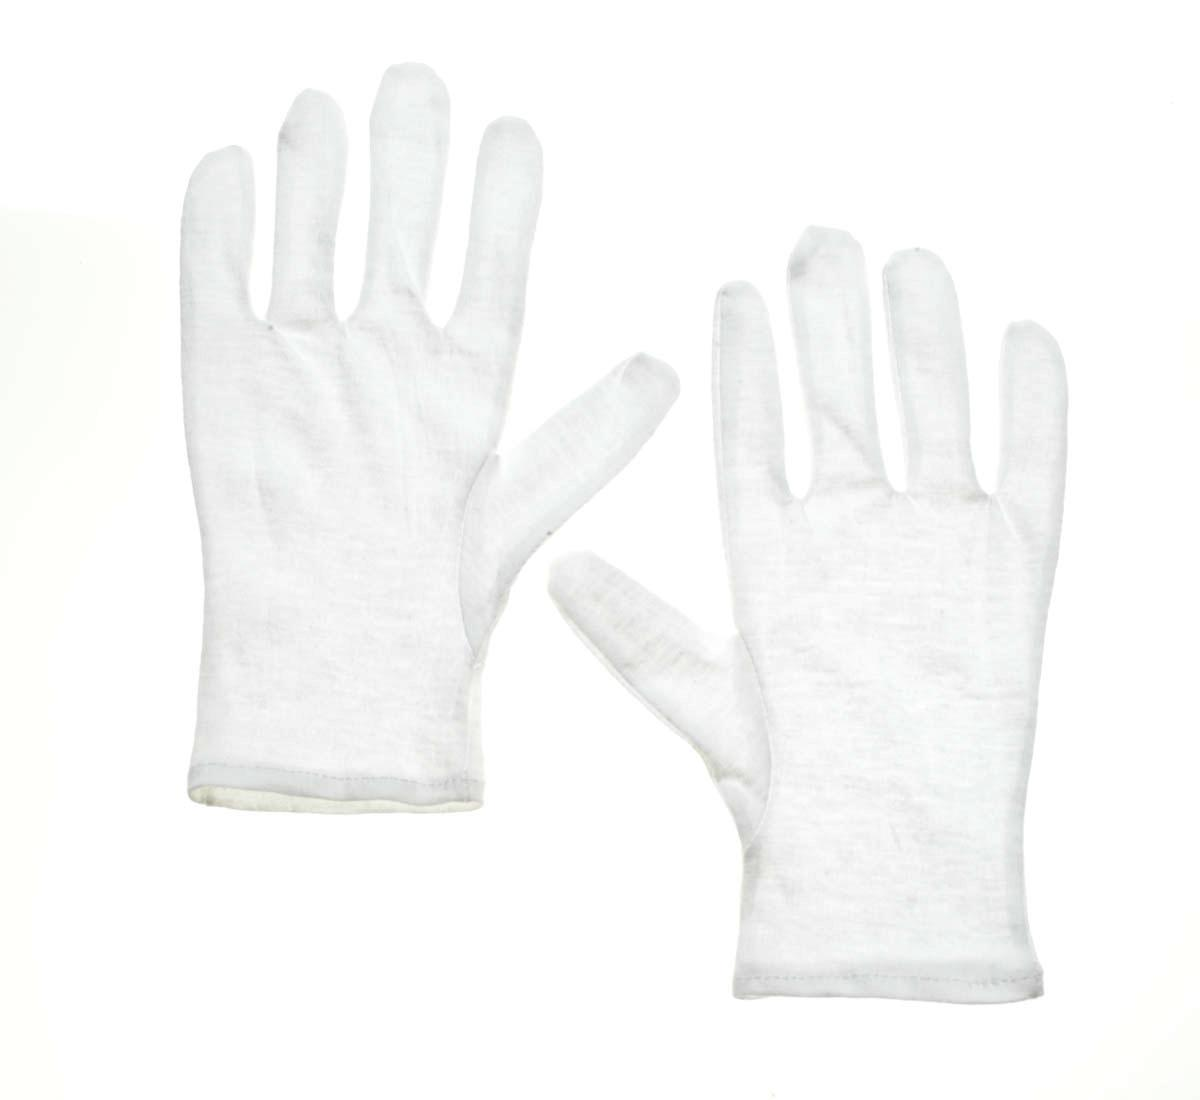 Glove Liners Nylon Knit Large Medical Mart